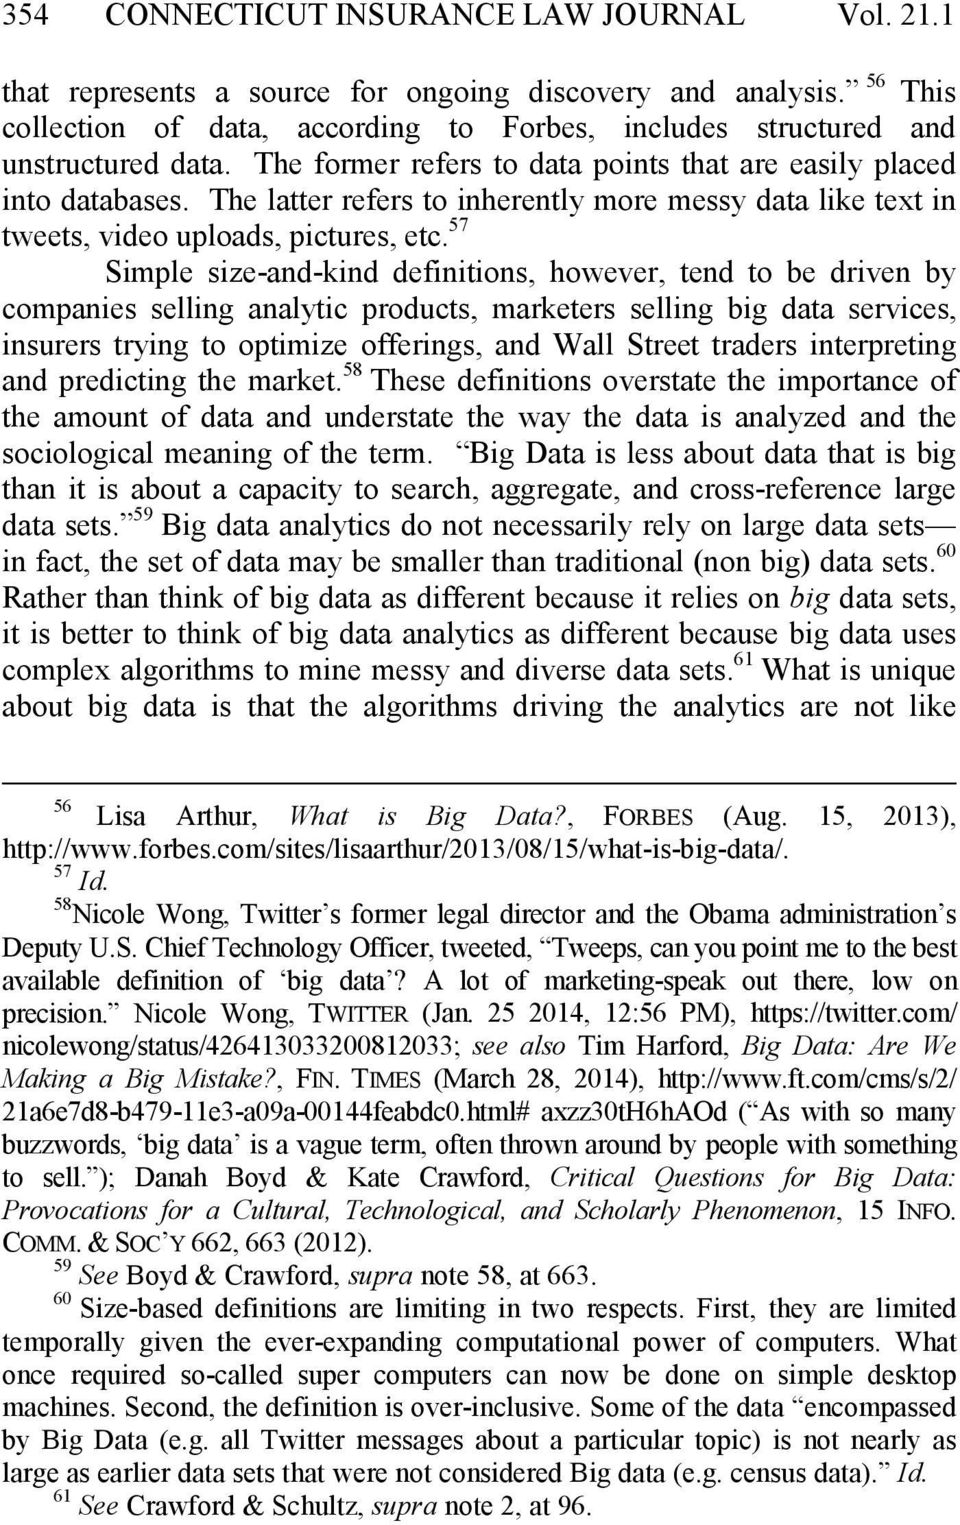 57 Simple size-and-kind definitions, however, tend to be driven by companies selling analytic products, marketers selling big data services, insurers trying to optimize offerings, and Wall Street